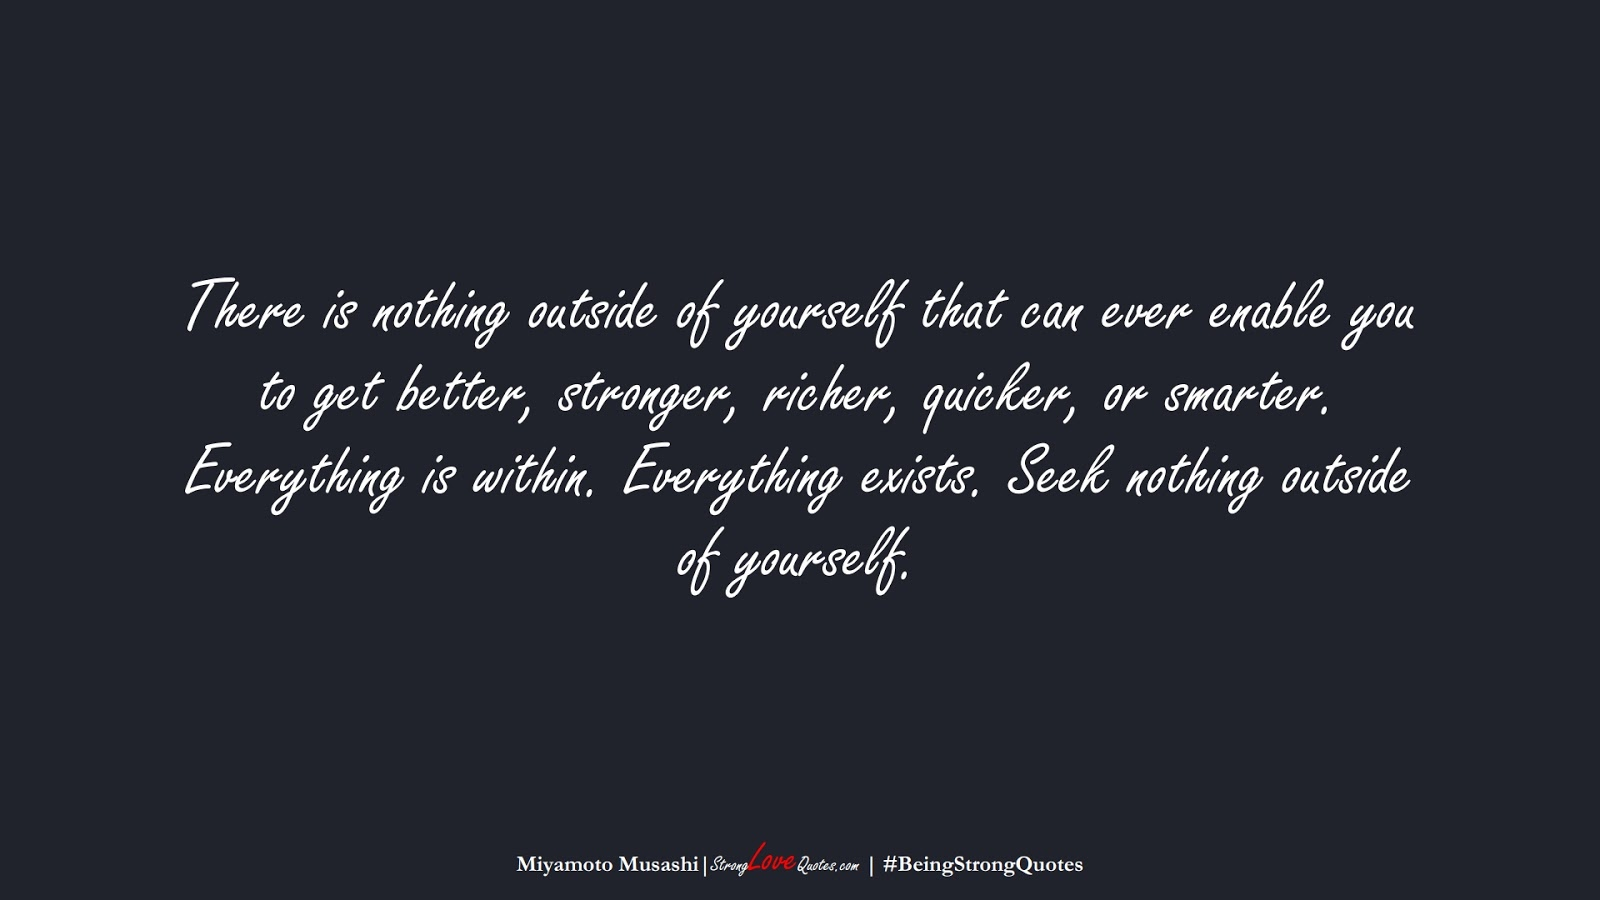 There is nothing outside of yourself that can ever enable you to get better, stronger, richer, quicker, or smarter. Everything is within. Everything exists. Seek nothing outside of yourself. (Miyamoto Musashi);  #BeingStrongQuotes